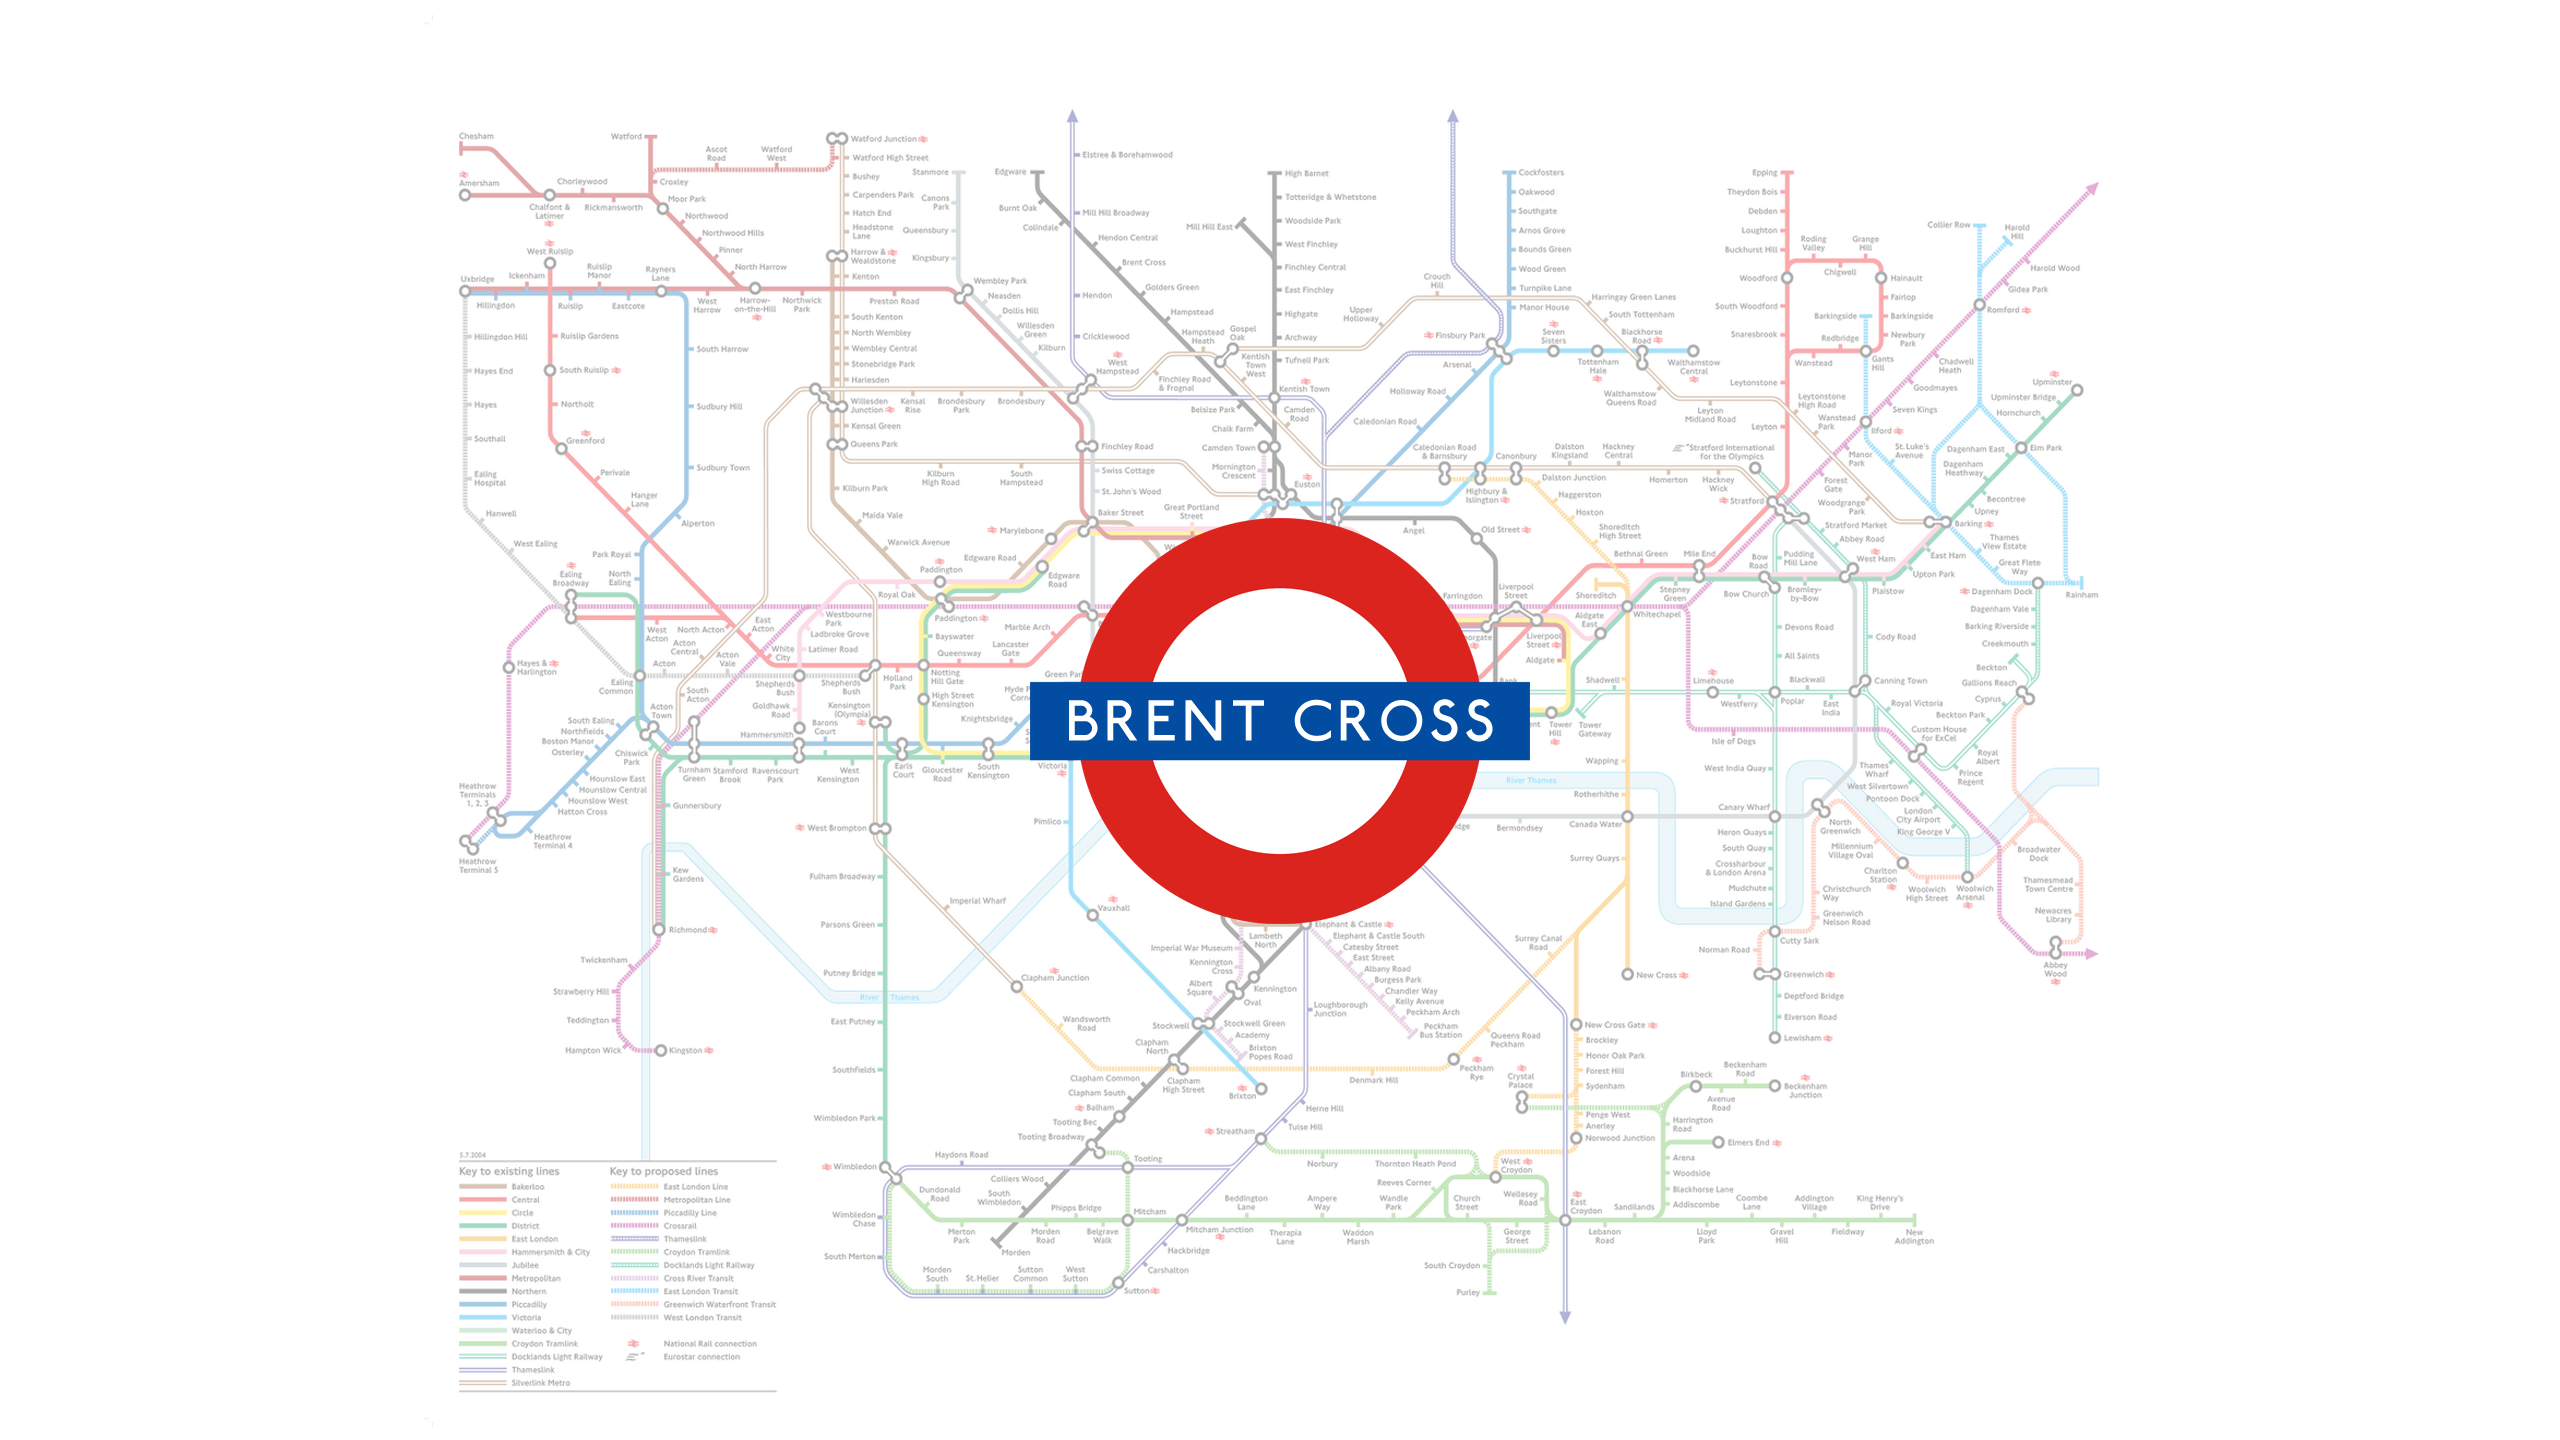 Brent Cross (Map)